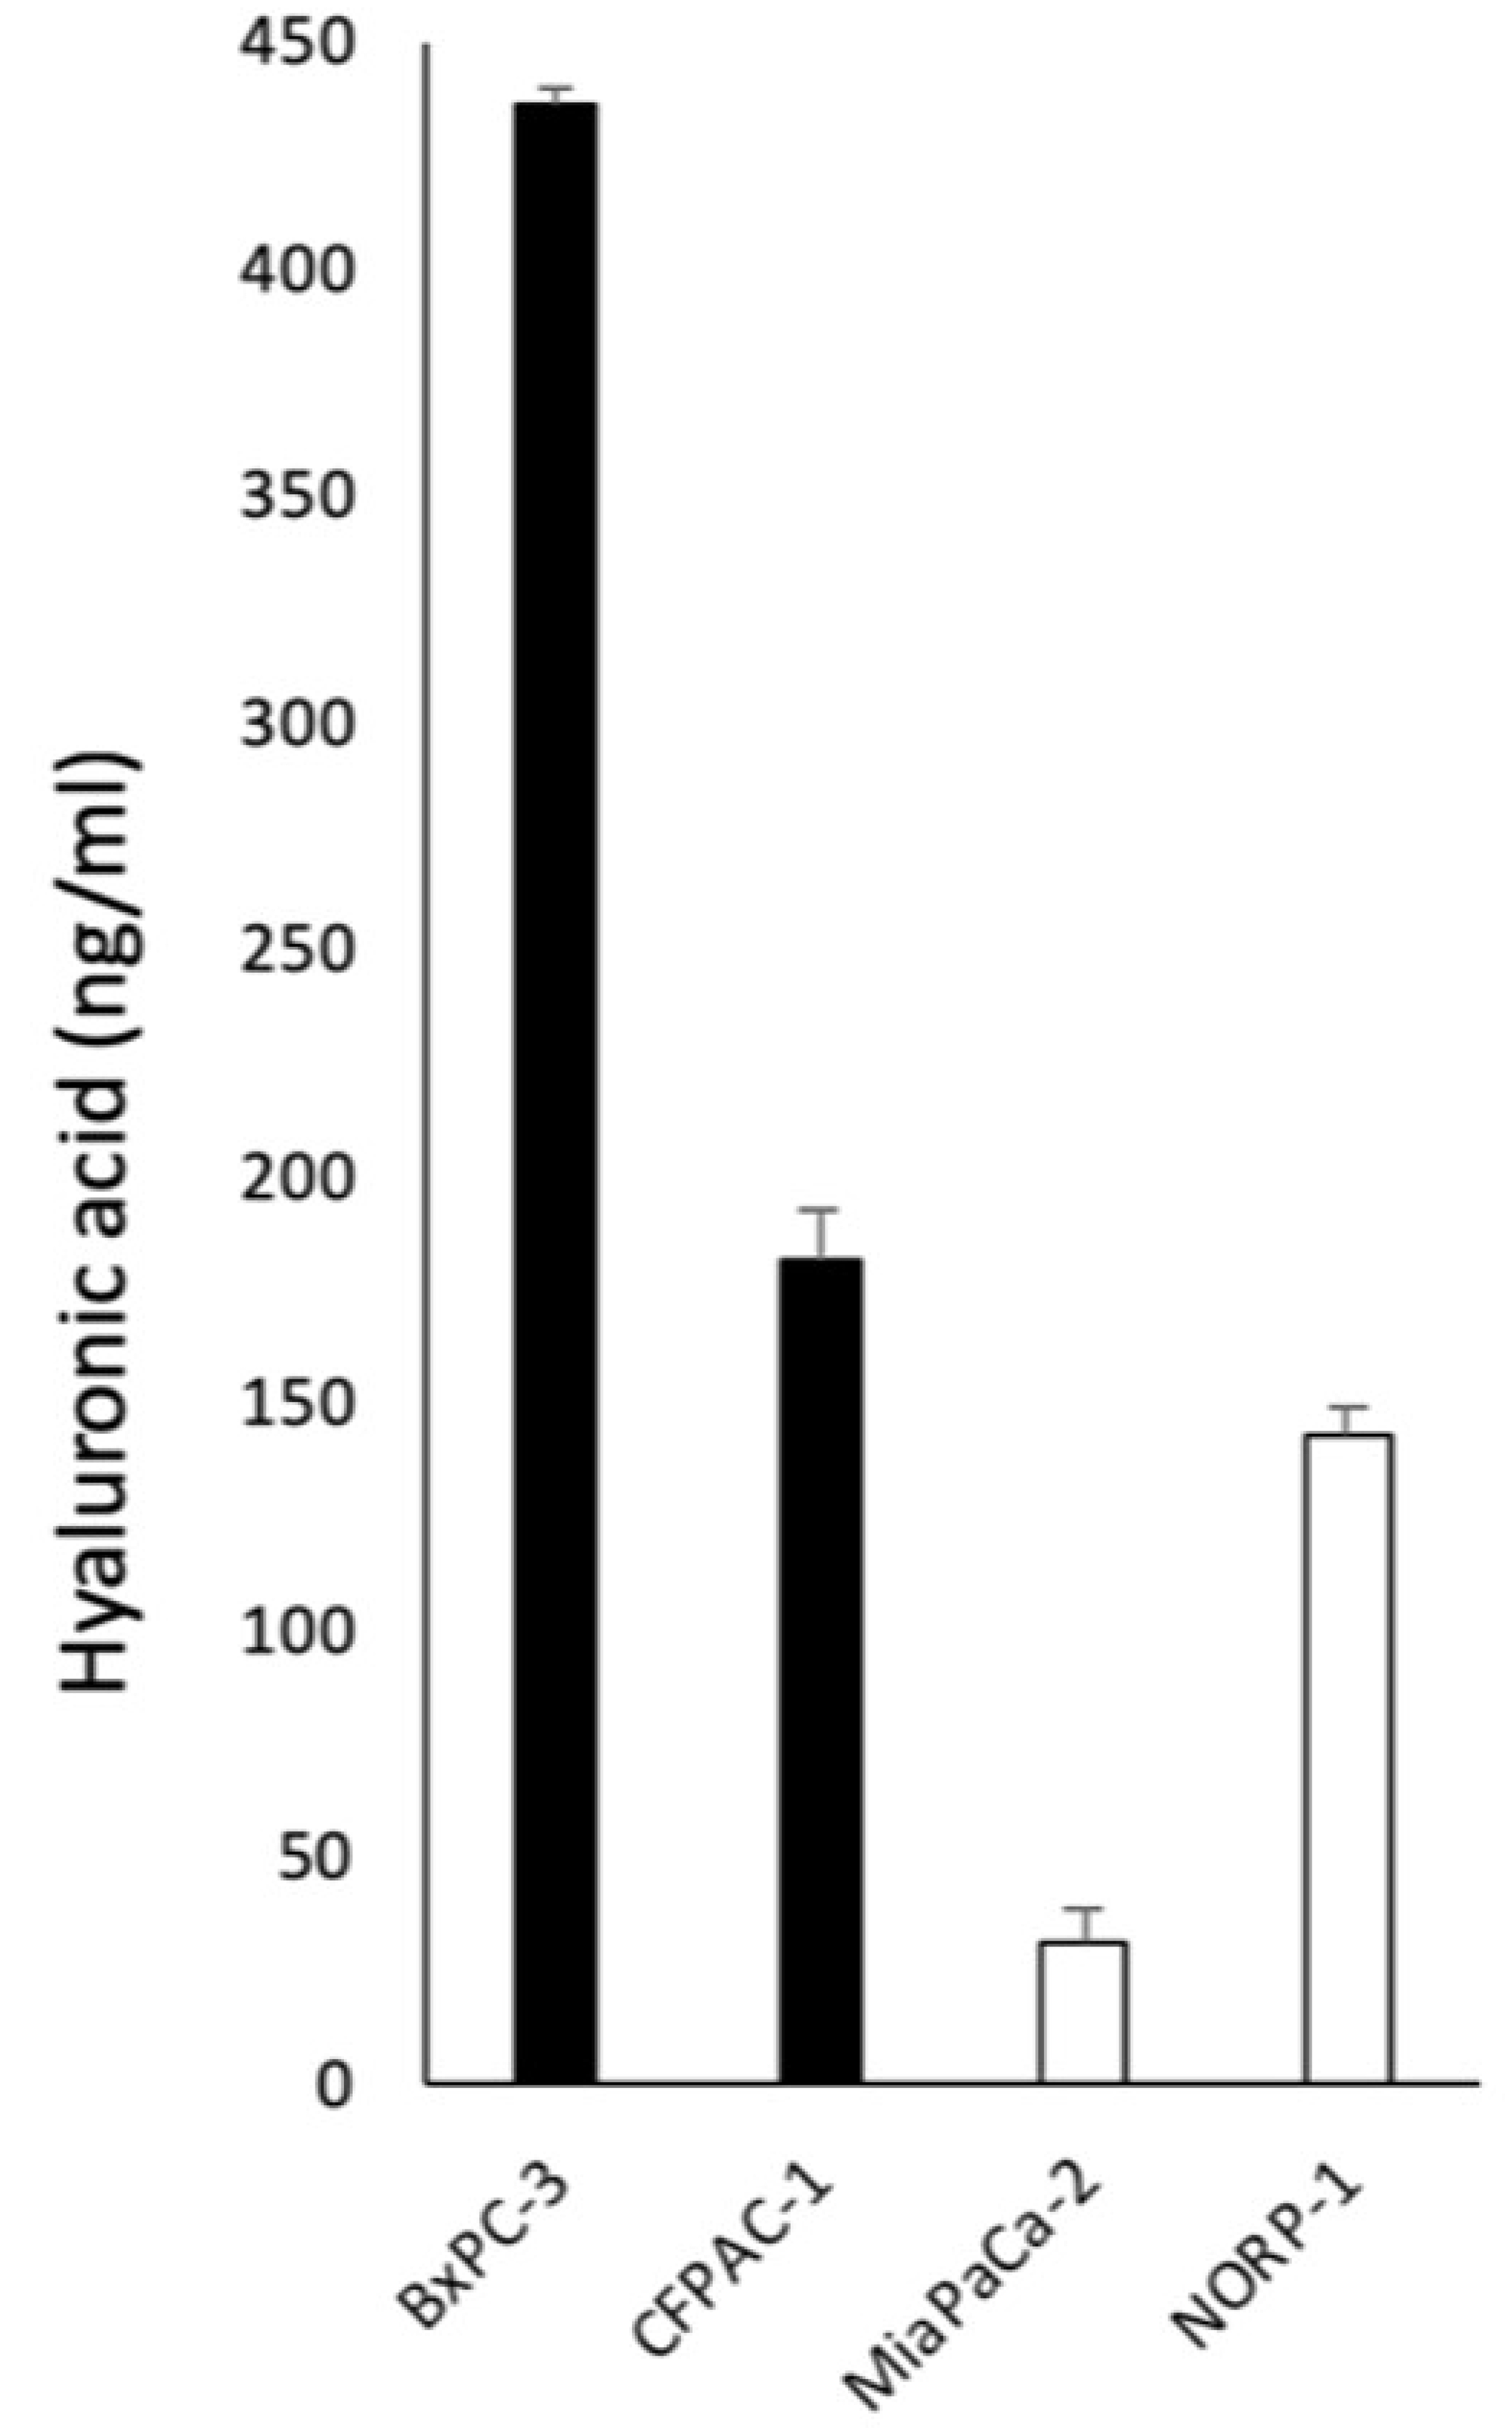 Concentrations of HA in conditioned media from HAMP + cell lines (BxPC3 and CFPAC1) and HAMP- cell lines (MiaPaCa2 and NOR-P1).